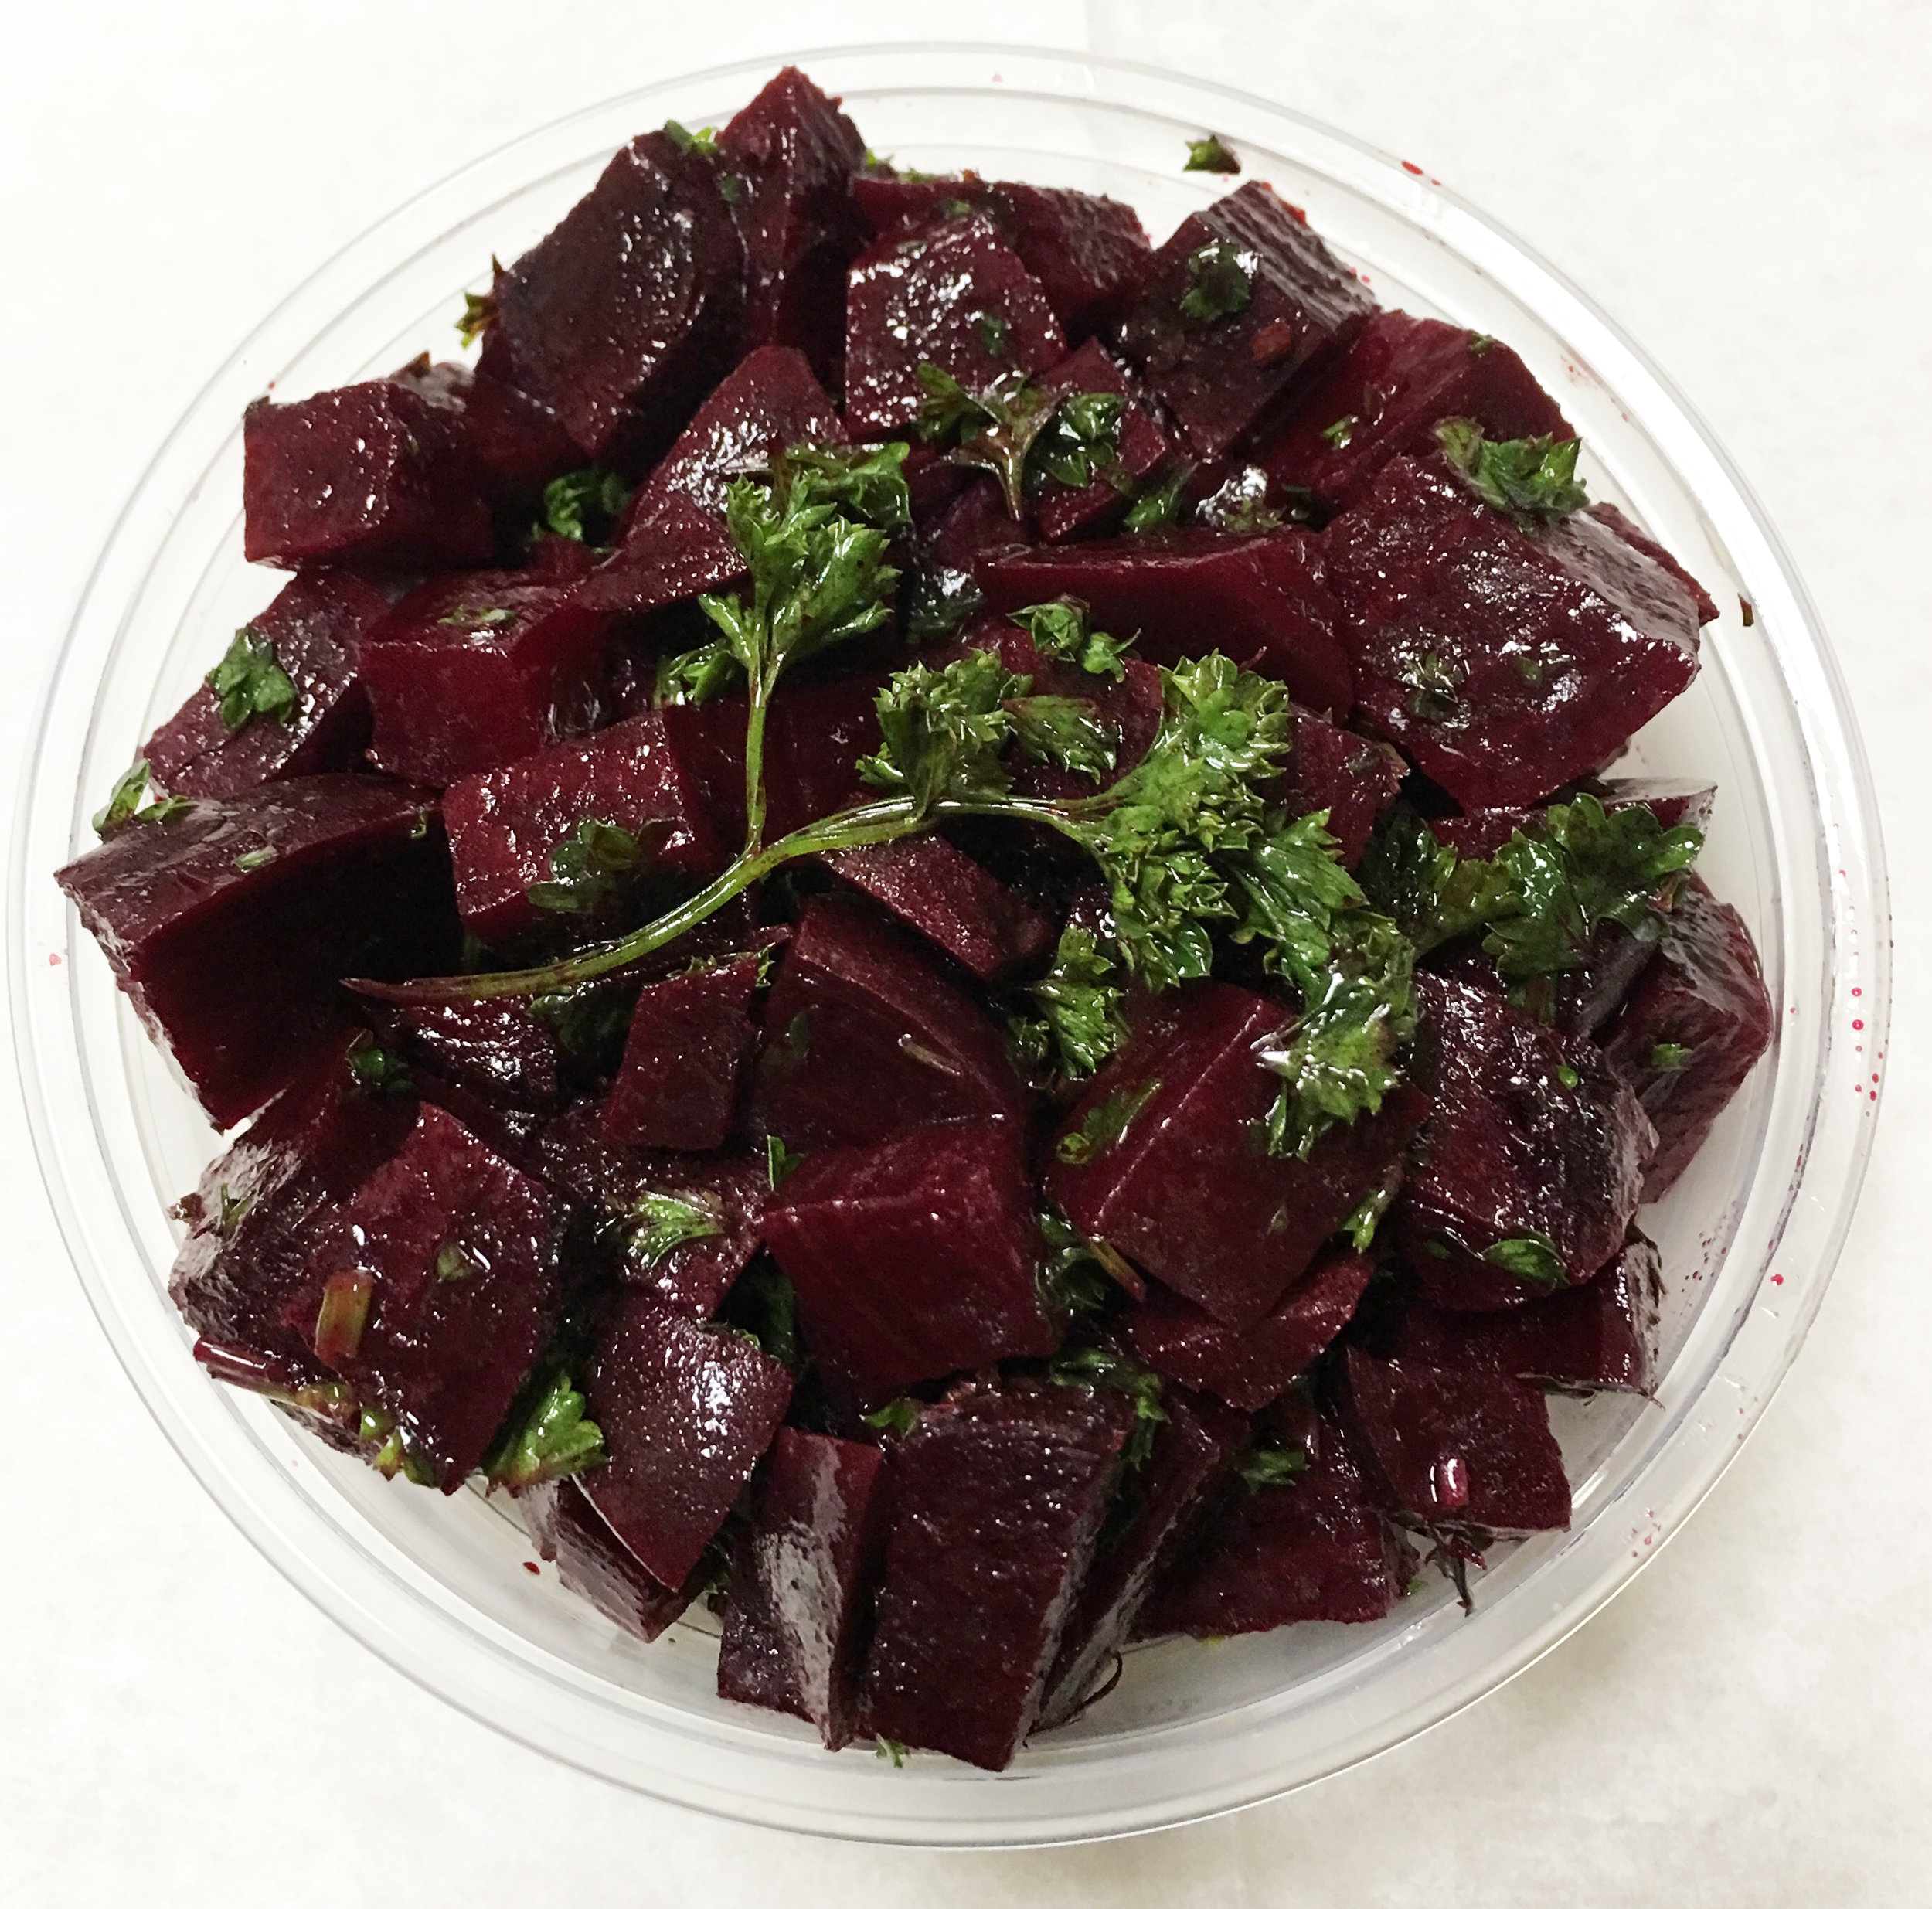 Red beet and parsley salad.